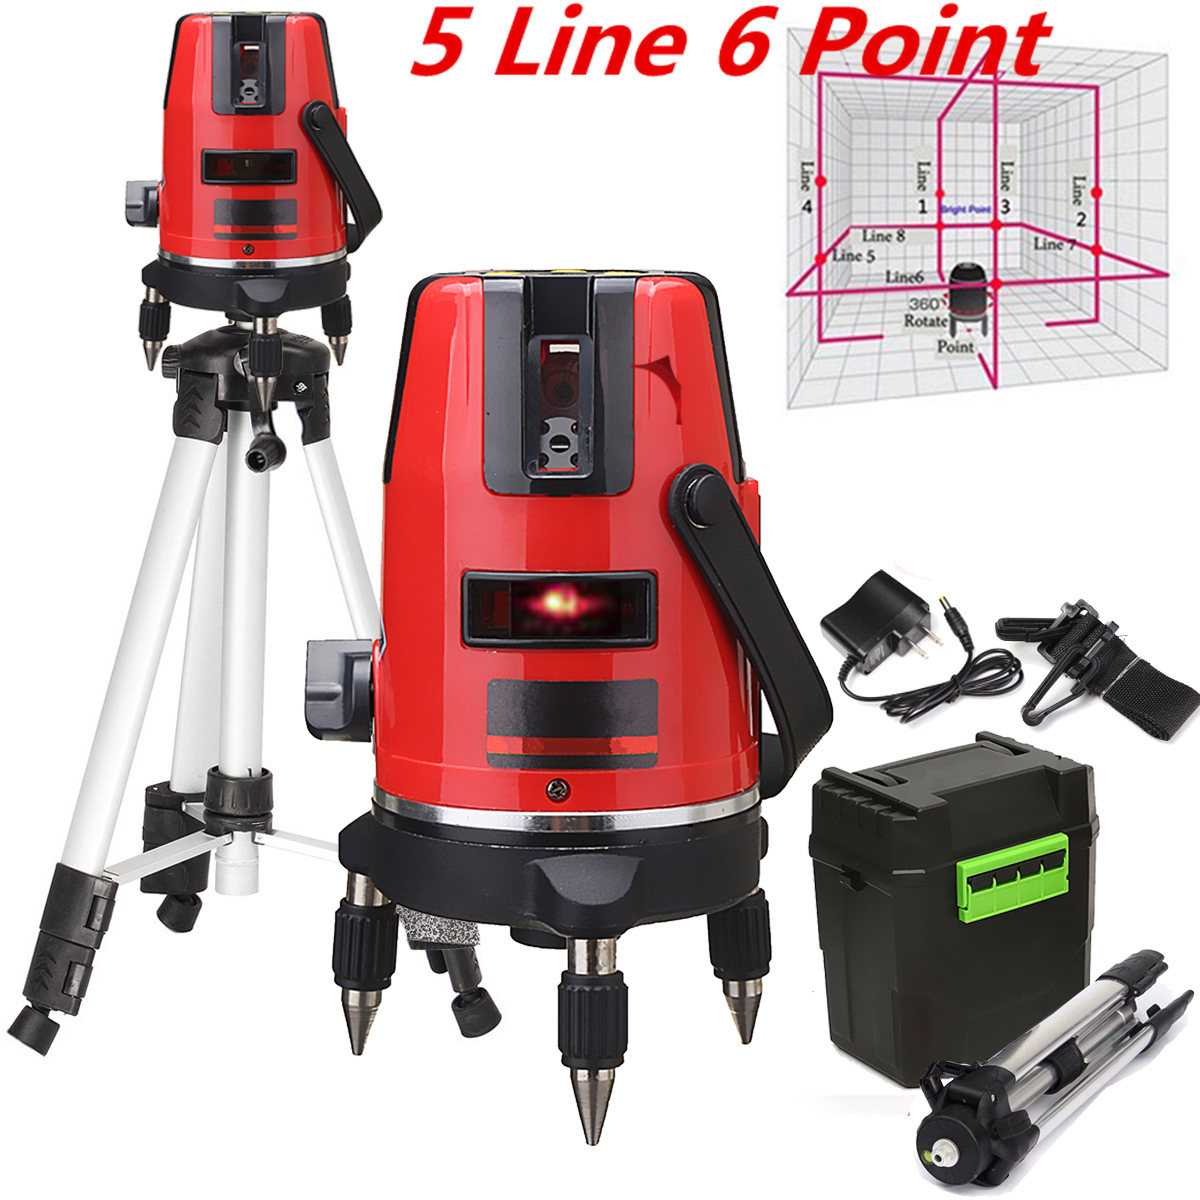 360° Rotary Professional Automatic Self Leveling 5 Line 6 Point 4V1H Red Laser Level Meter Measure With Tripod